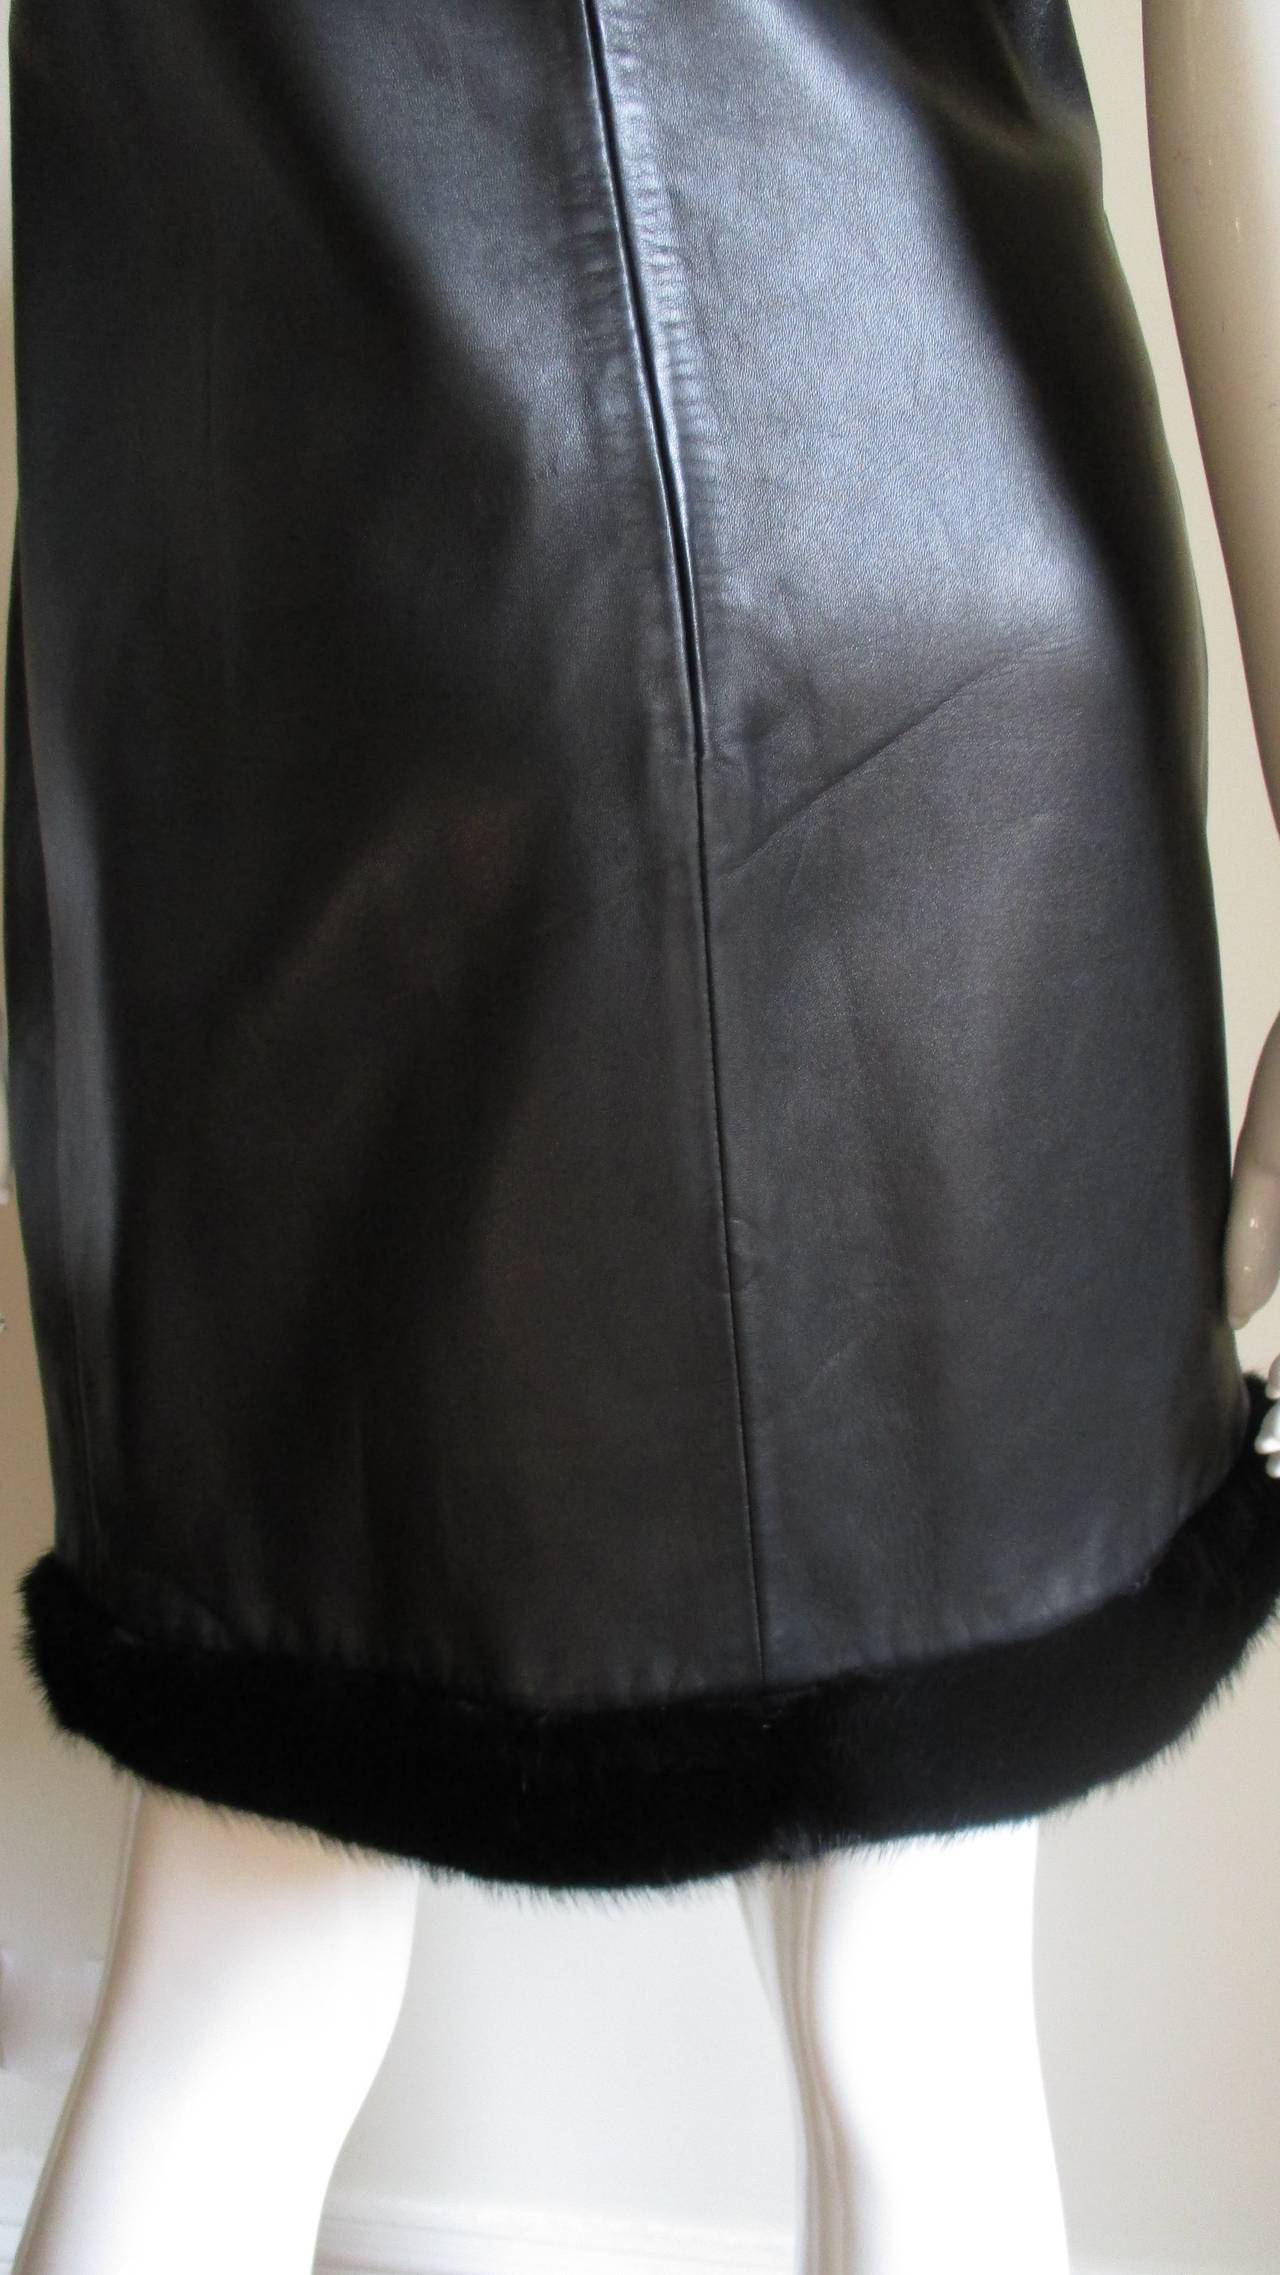 Vintage Gianni Versace Leather Dress with Mink Trim 8